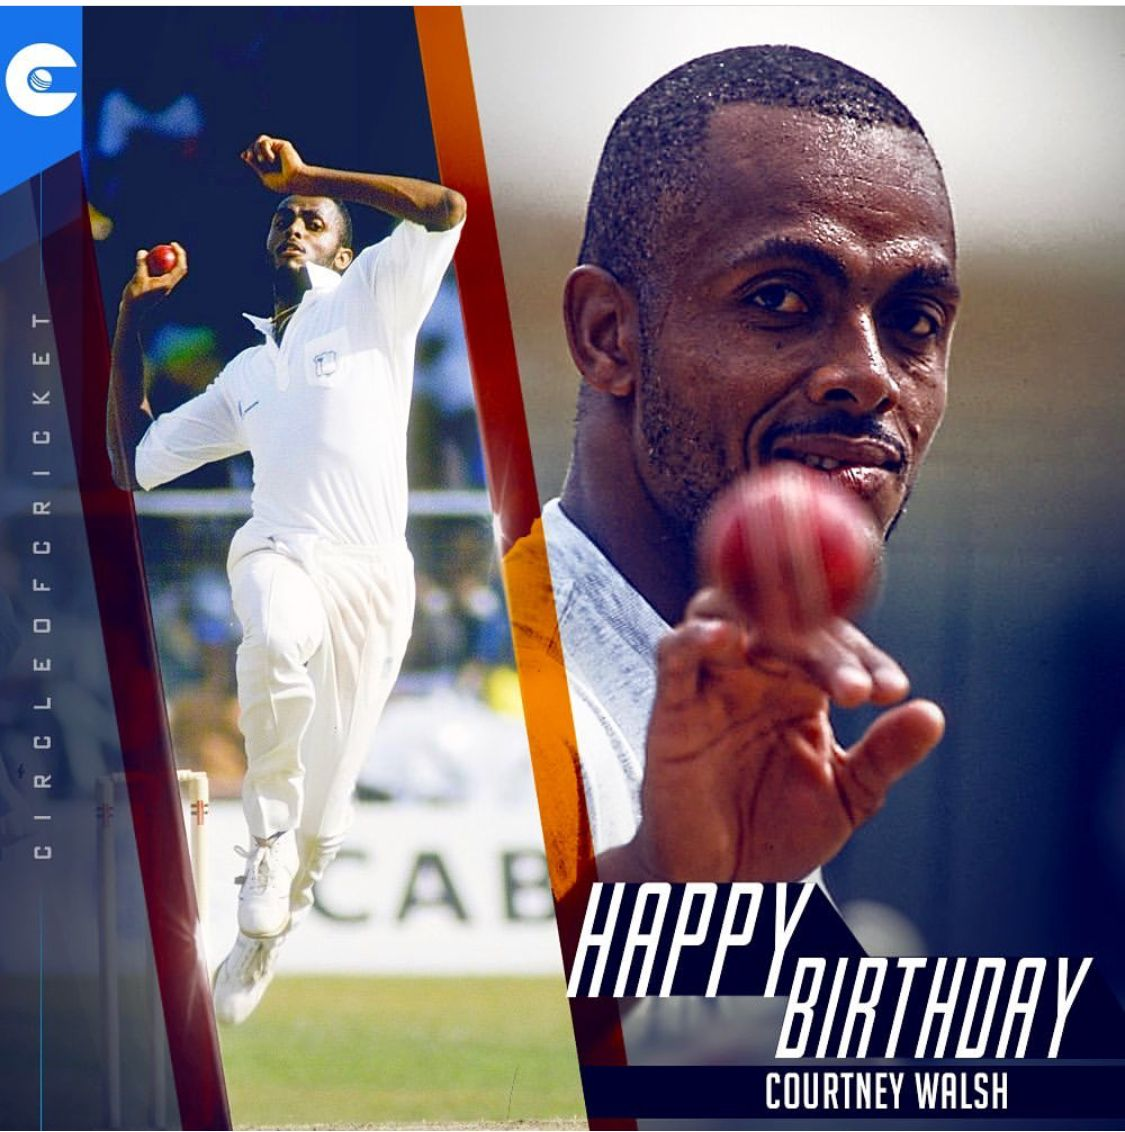 Pin by Circle of Cricket on Birthday Special (With images